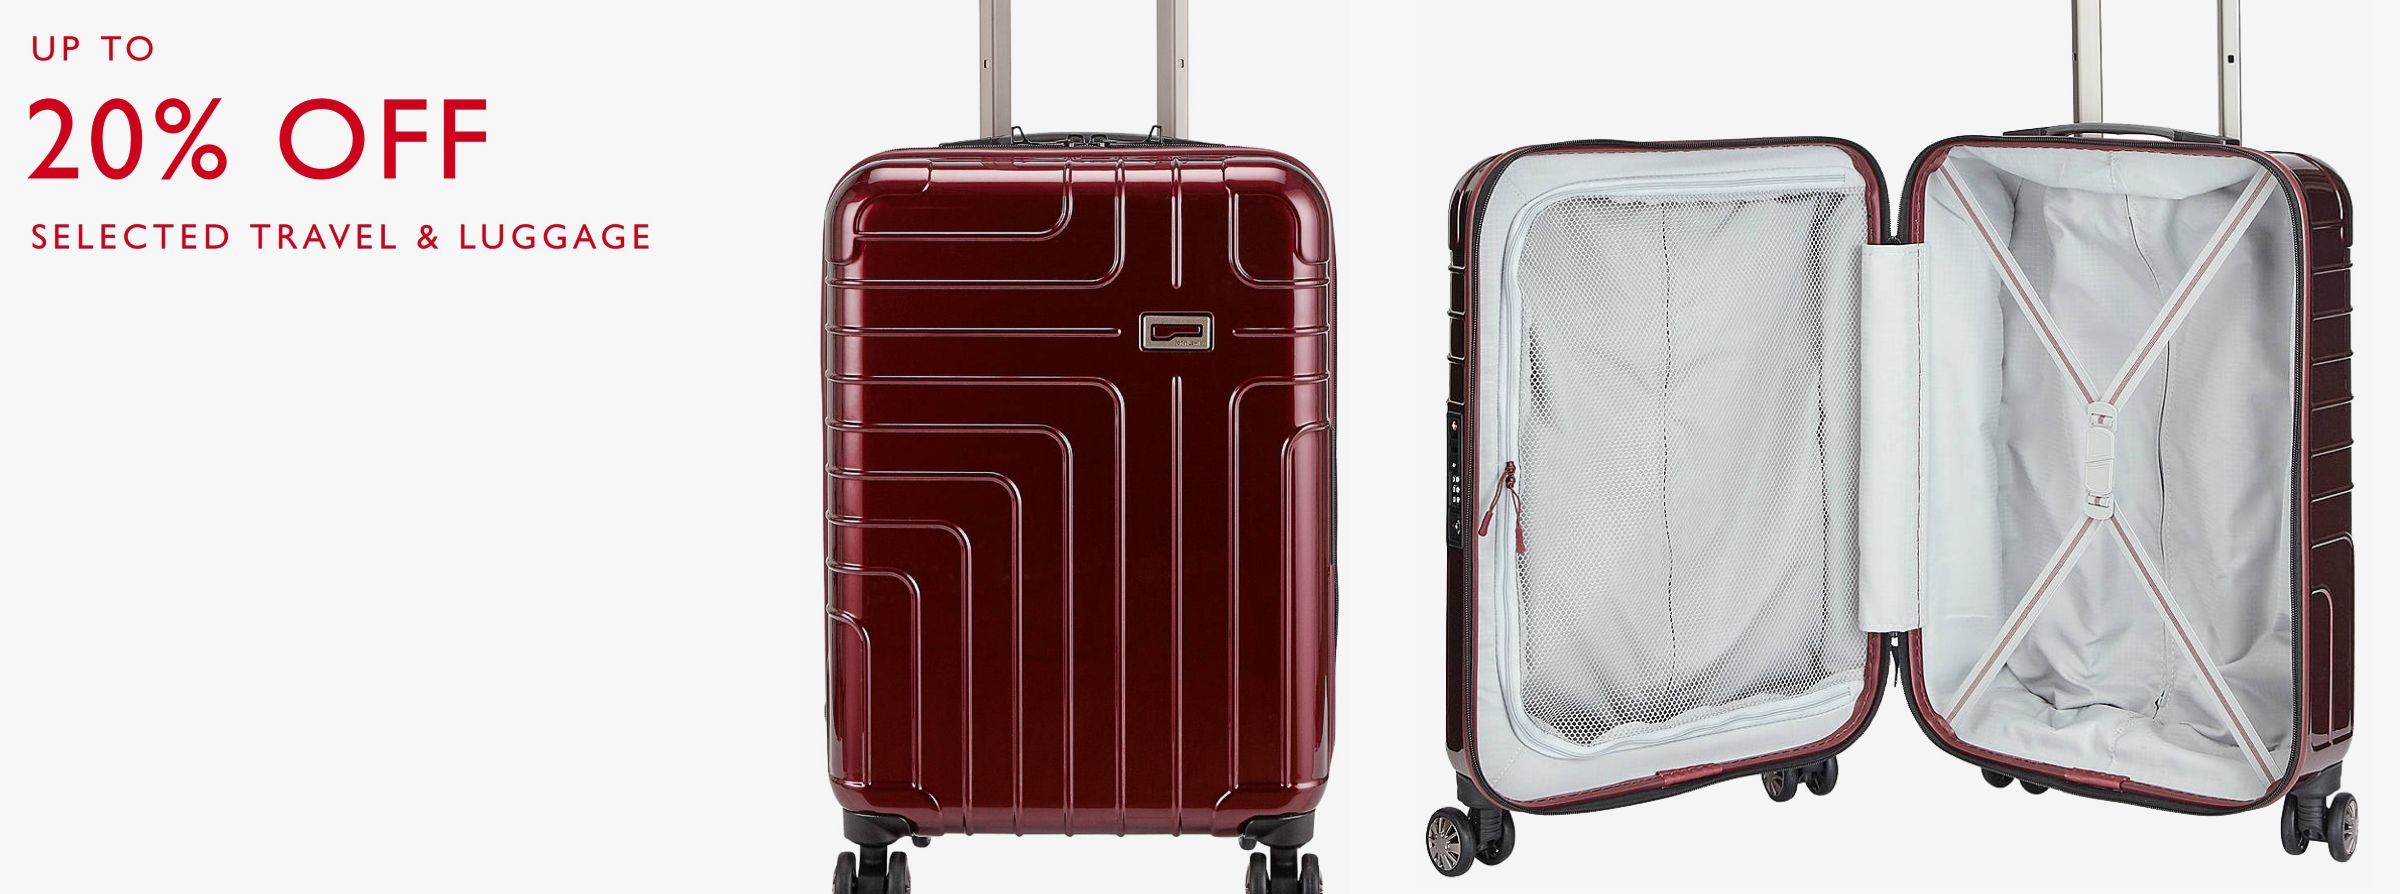 24b77a39d4c Travel   Luggage Accessories